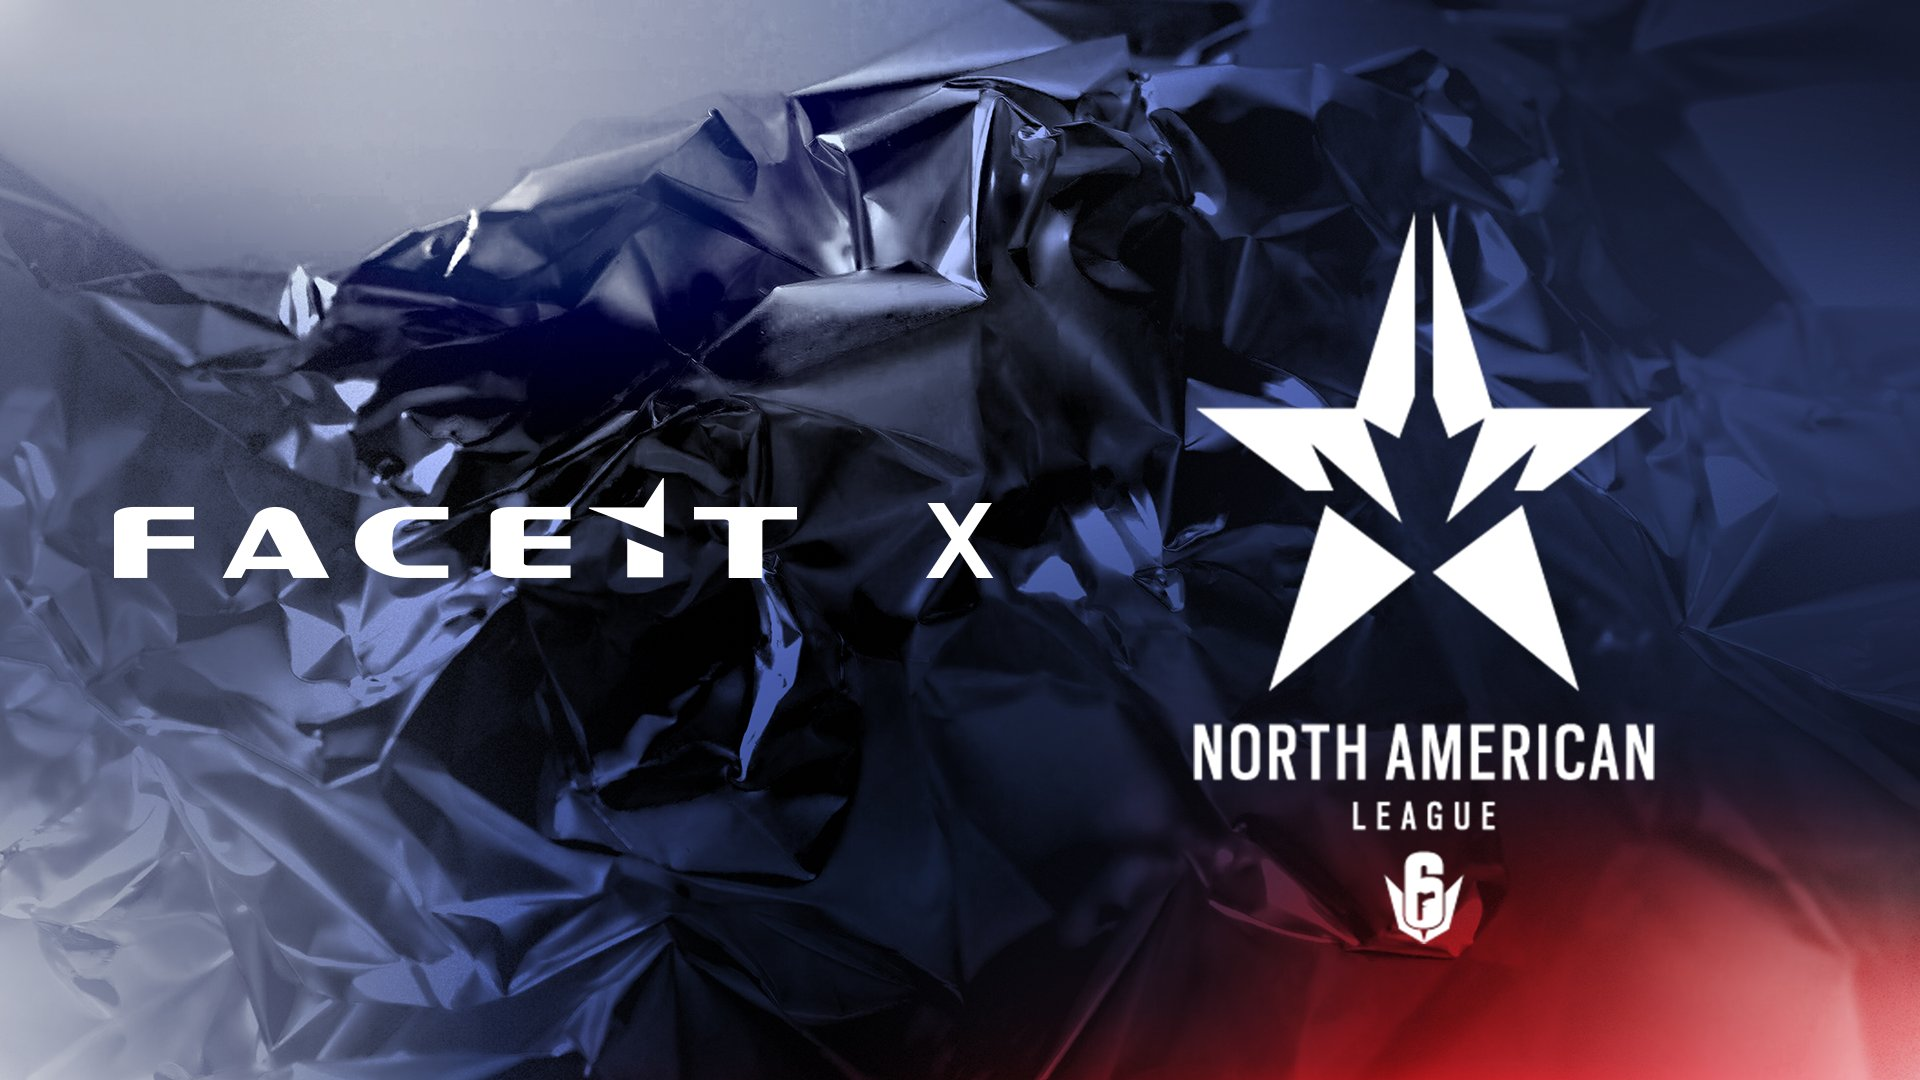 FACEIT to Operate North American Rainbow Six Division - Hotspawn